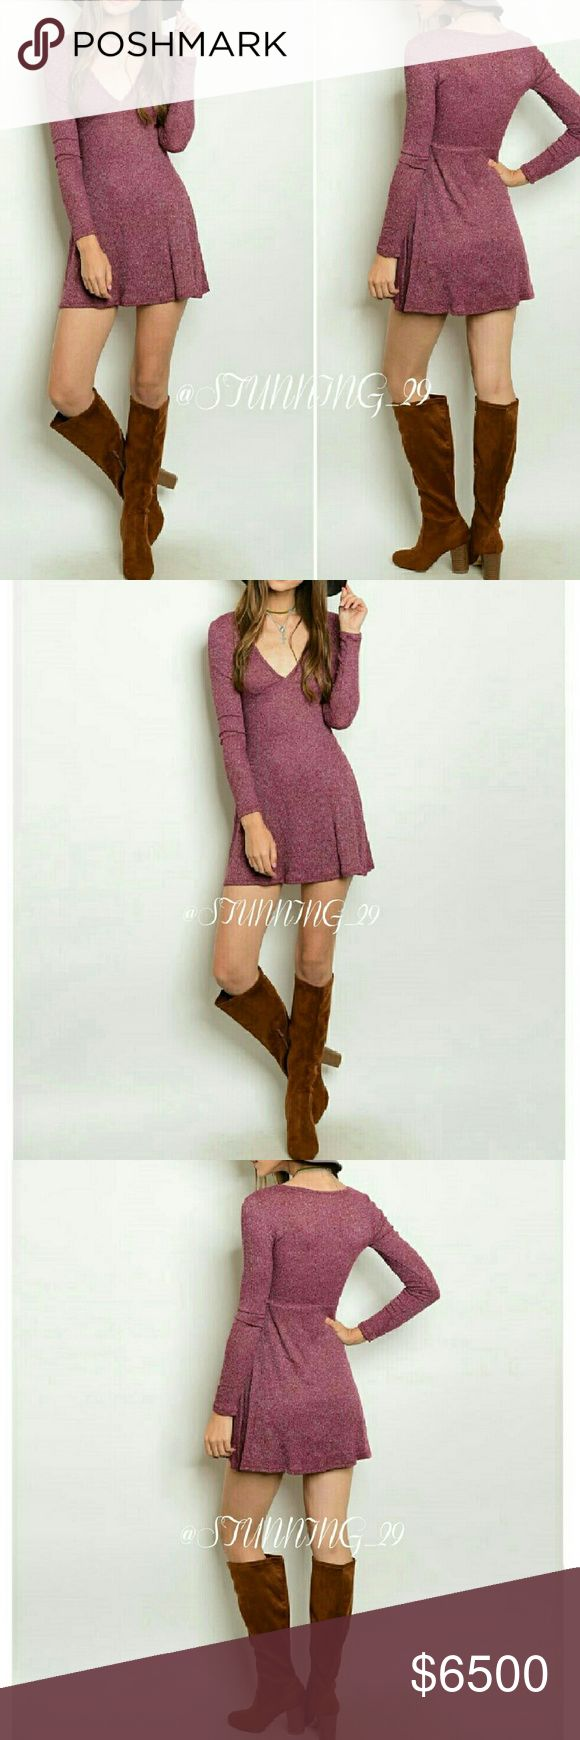 🆕**ARRIVING SOON **BURGUNDY RIBBED SWEATER DRESS **ARRIVING SOON * *✔CLICK LIKE NOW - ✔  PRICED HIGH FOR A SHIP DISCOUNT WHEN THESE ARRIVE ?.LONG SLEEVE W/ A PLUNGE NECKLINE , BURGUNDY MARBLED RIBBED DRESS. (74%RAYON/21%POLY/5% SPANDEX. MORE INFO & MEASUREMENTS WHEN THESE ARRIVE.   PRICE WON'T BE OVER  $35. BUNDLE 3 ITEMS GET 25 % OFF🌟🌟 Stunning_29  Dresses Mini